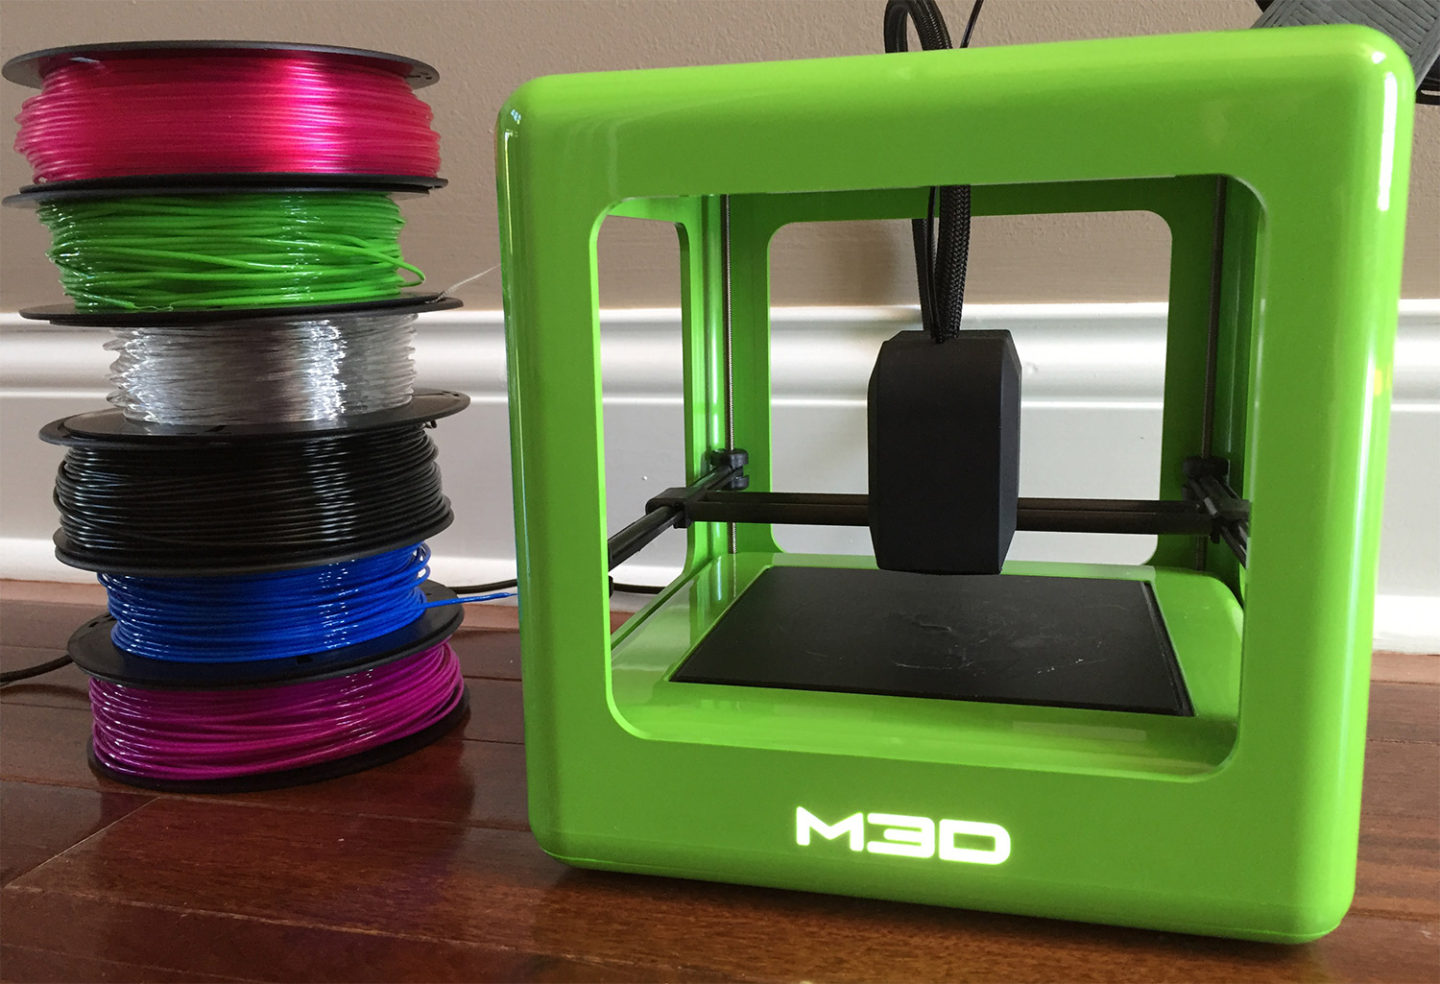 3d Micro Review M3d Micro 3d Printer At Home In The Future